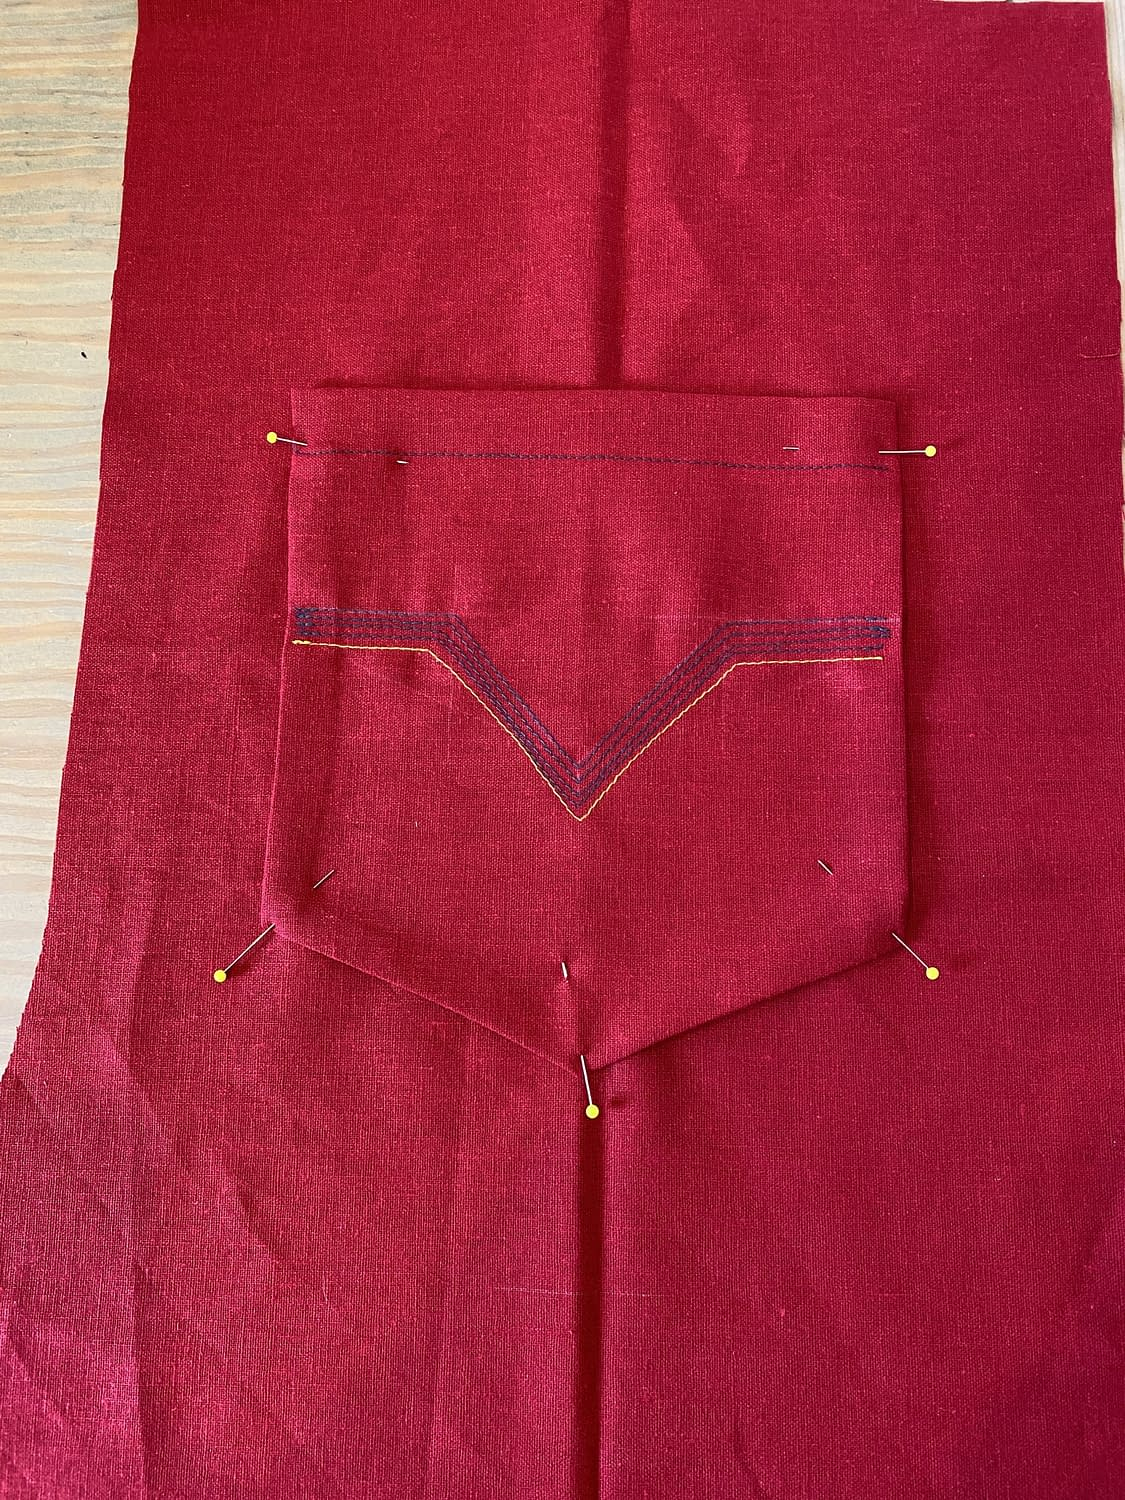 DIY-Dungaree-Overalls-Tutorial-attaching-your-pockets